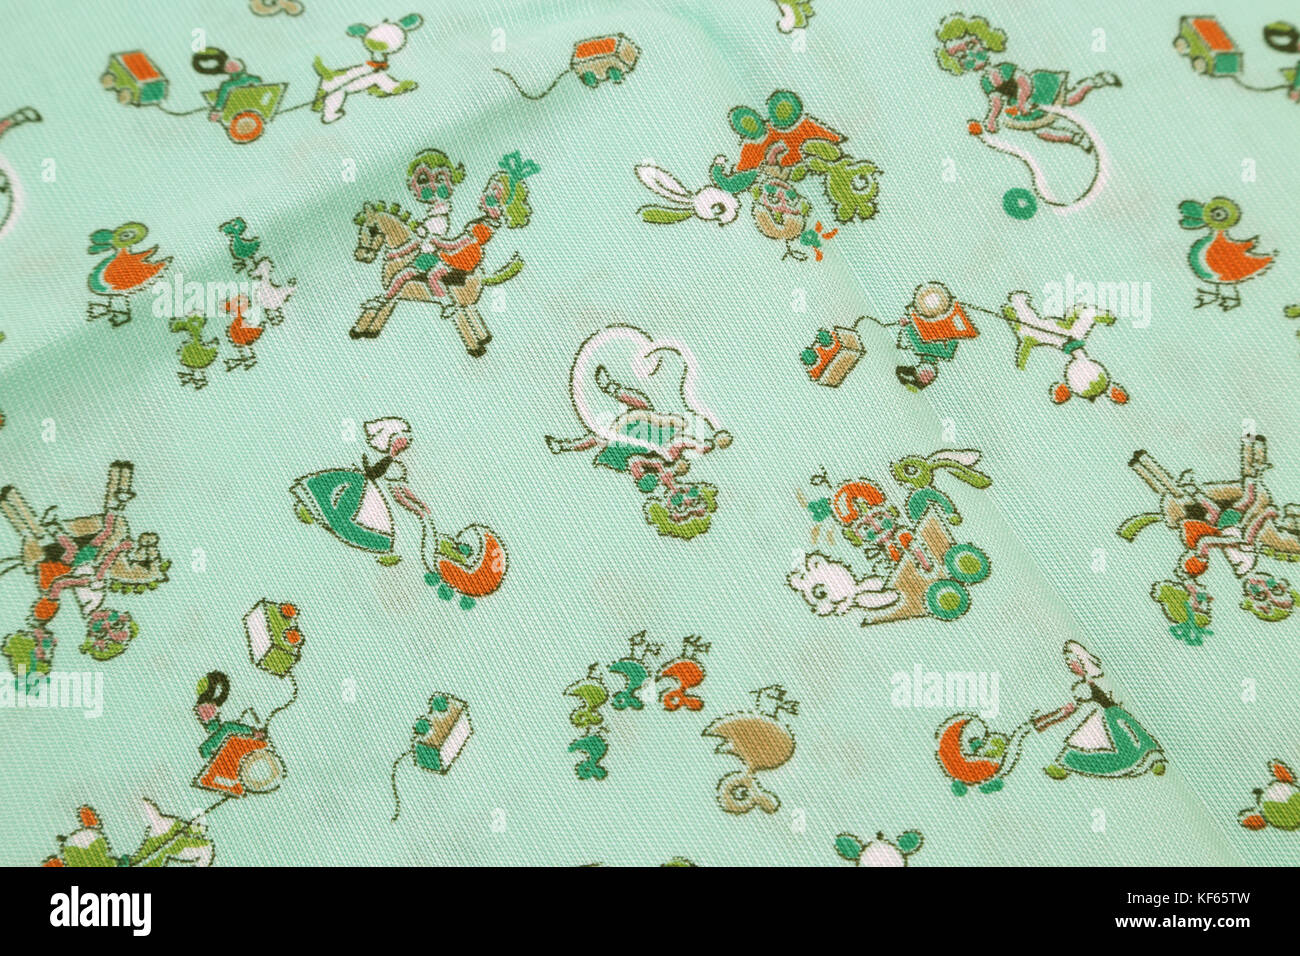 Vintage 1950's Cotton Fabric With Nursery Rhyme Motif - Stock Image